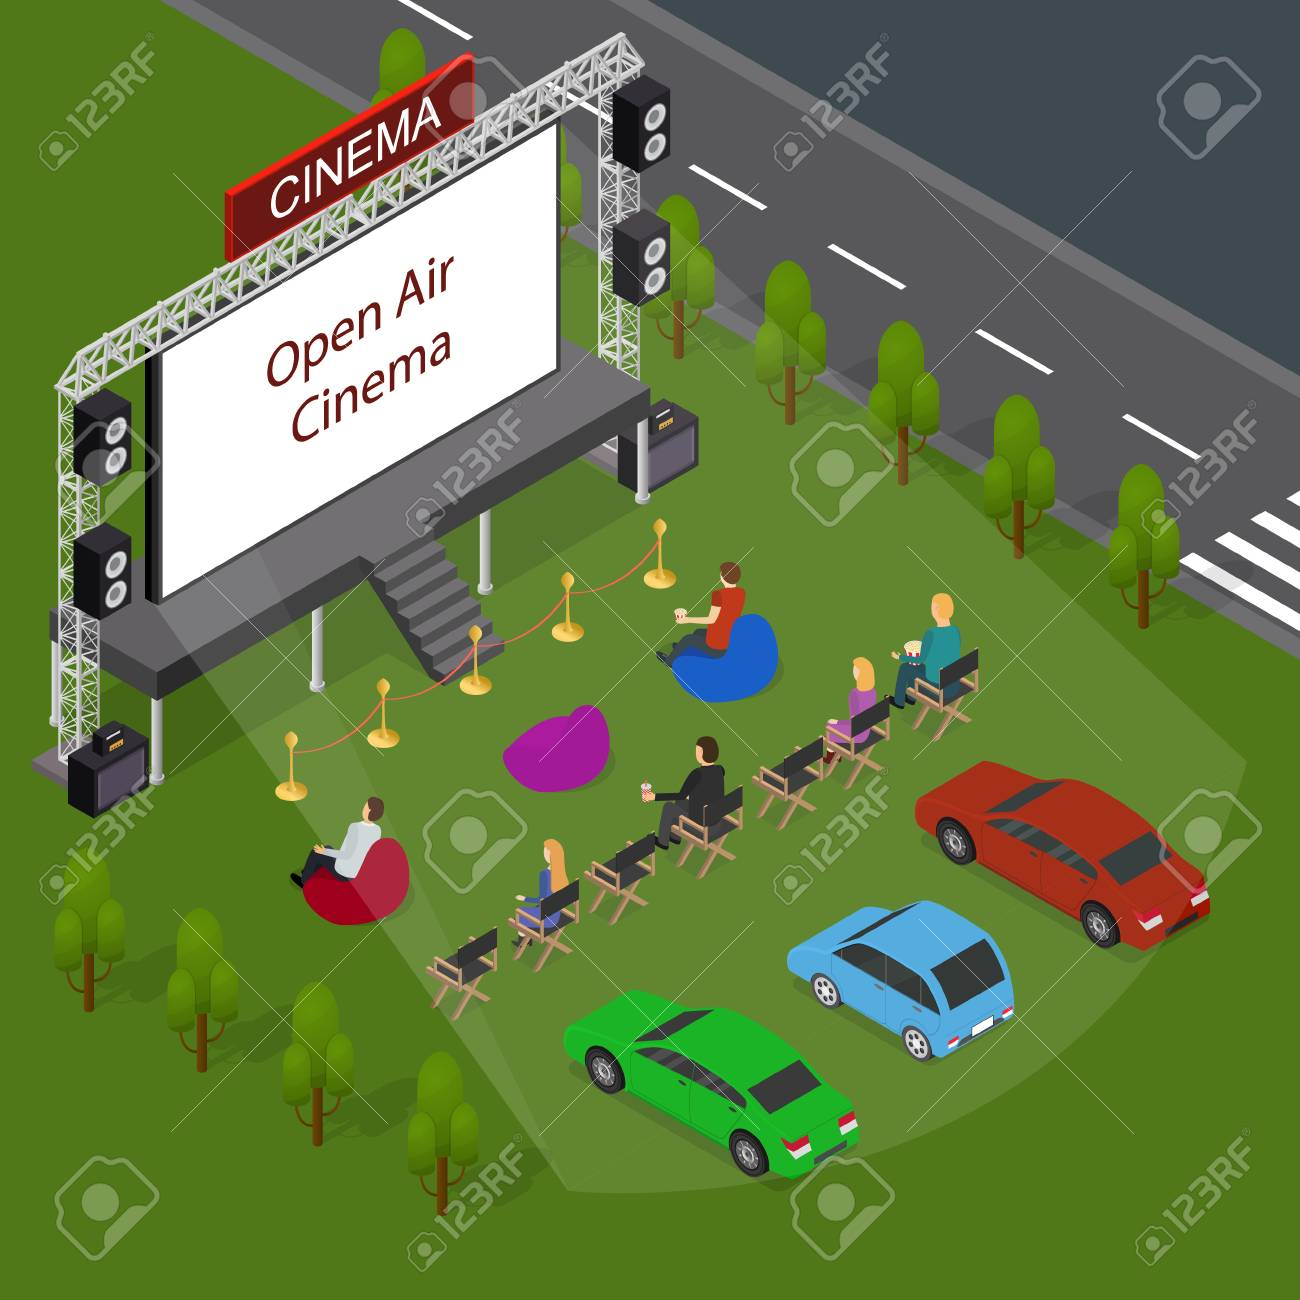 Open Air Cinema Concept 3d Isometric View. Vector - 90139887